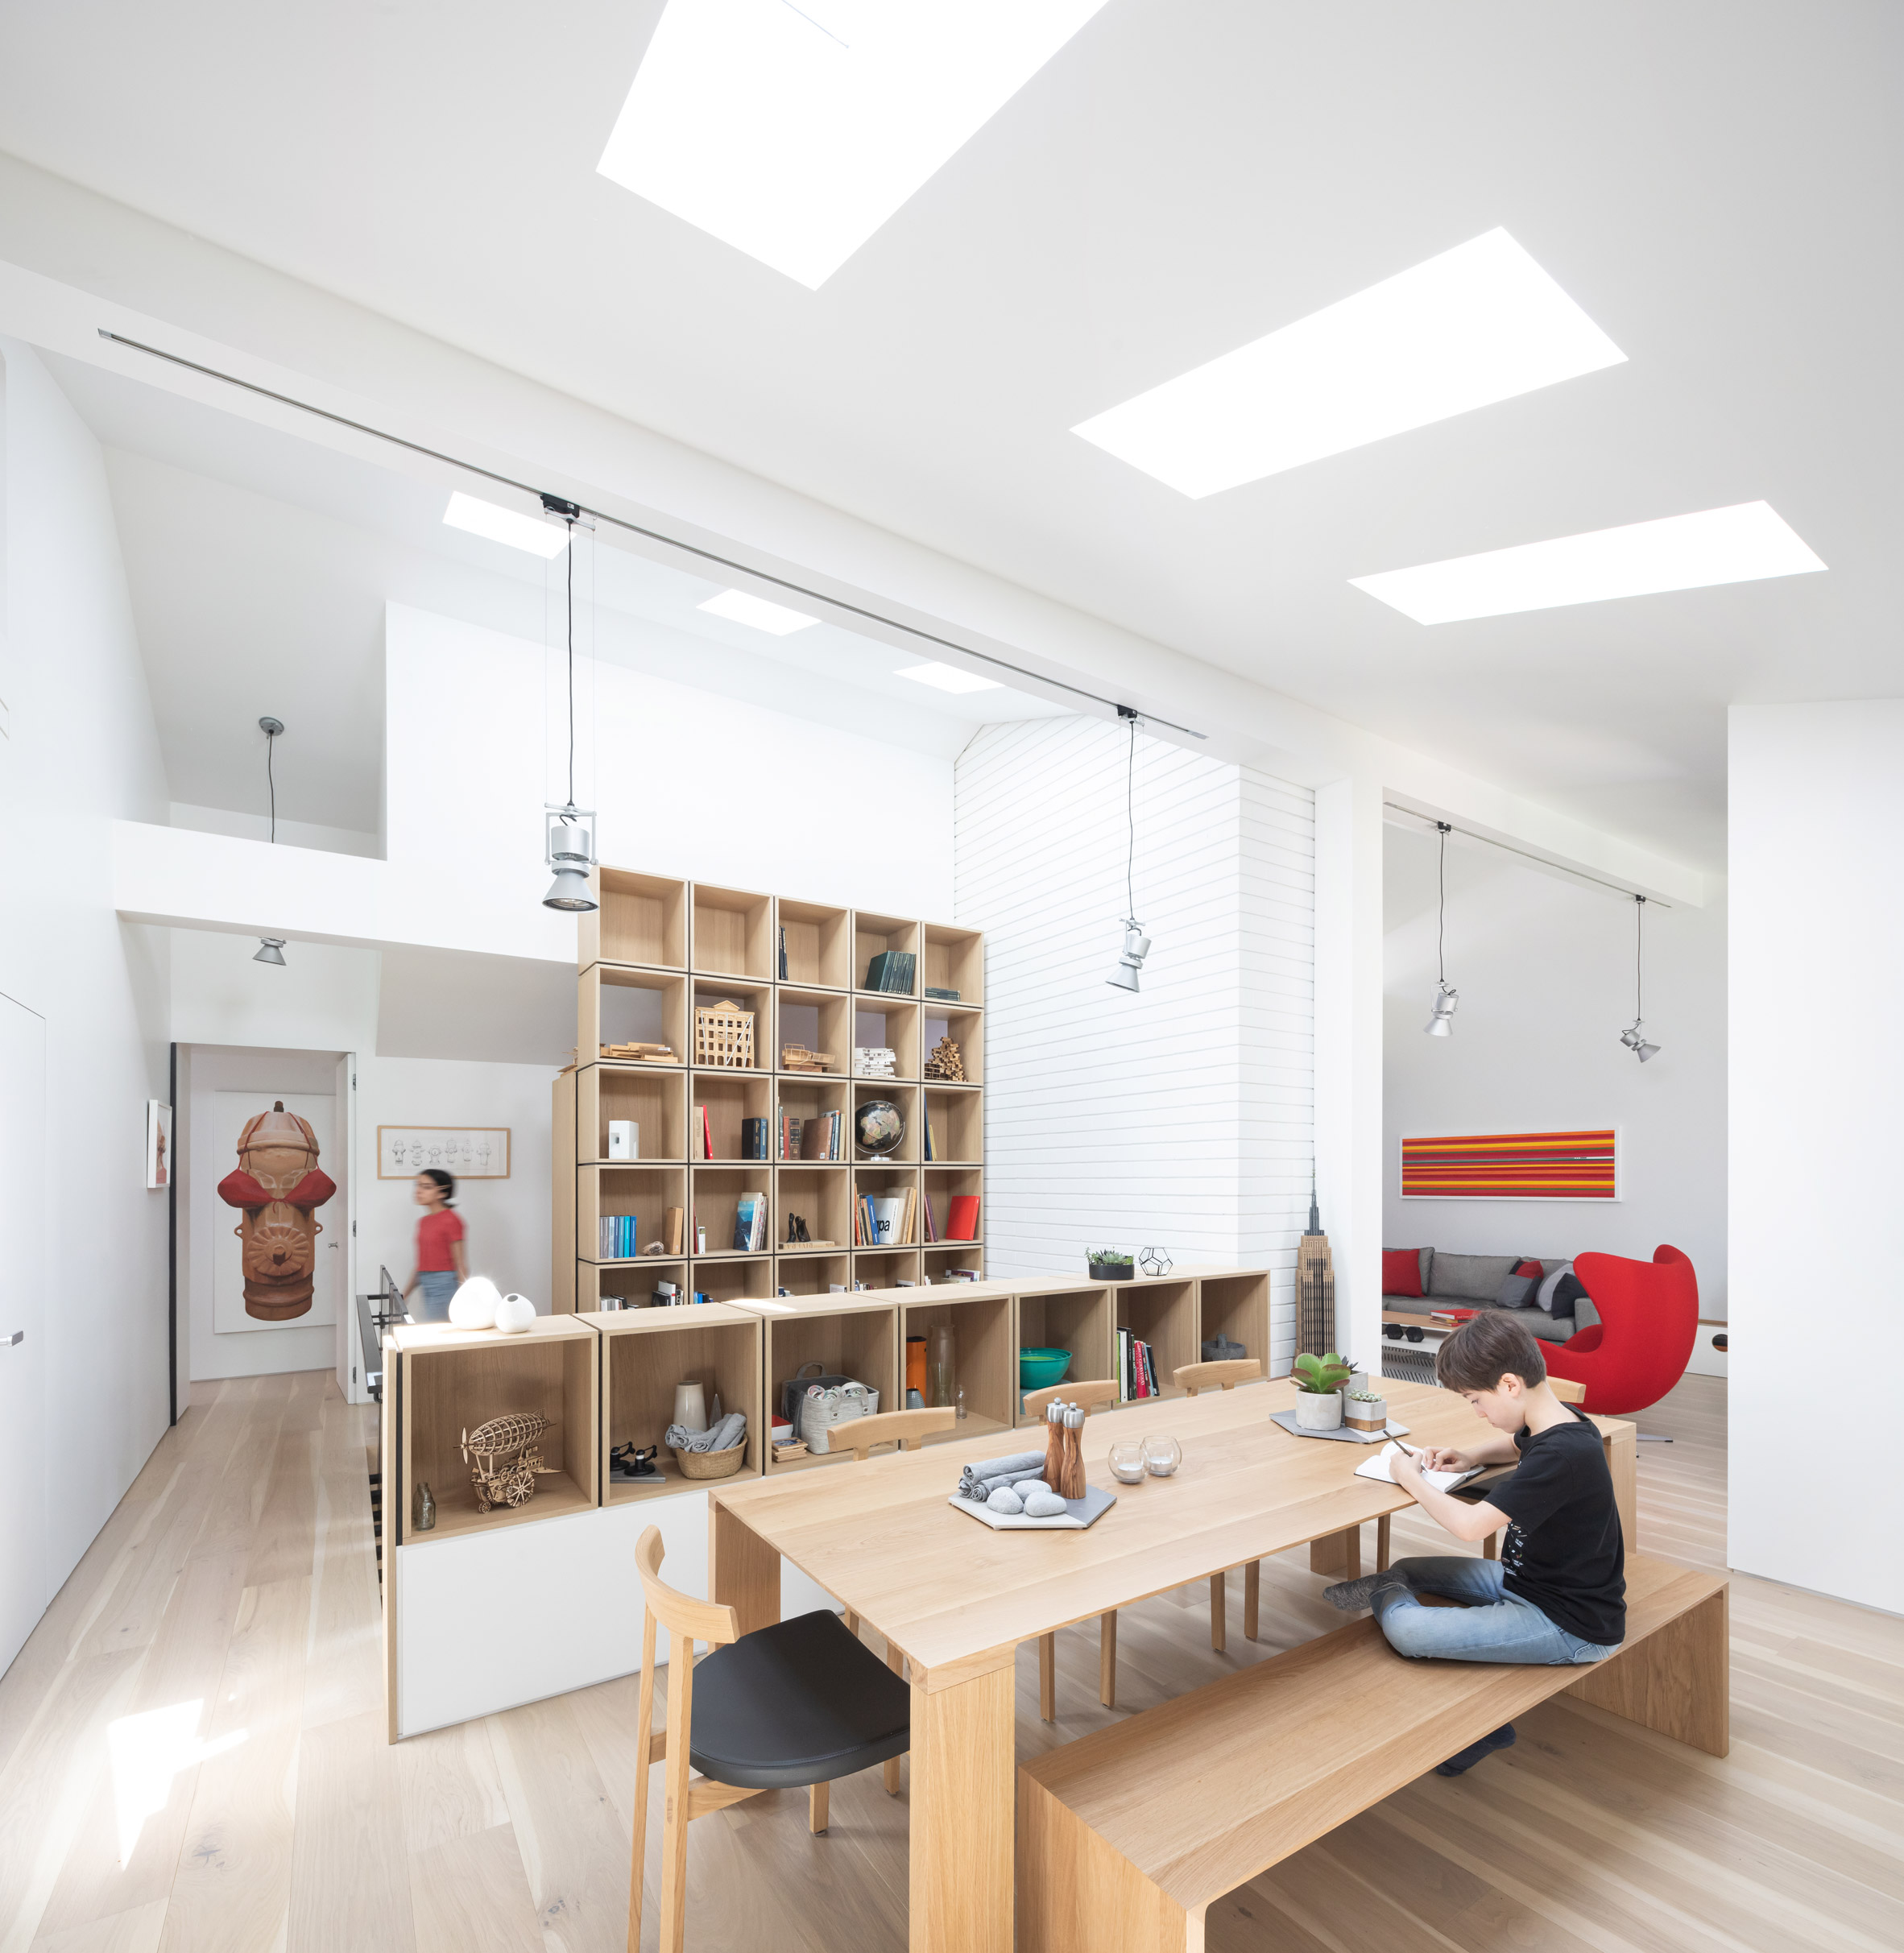 RSAAW renovated the house's interior with a double height library